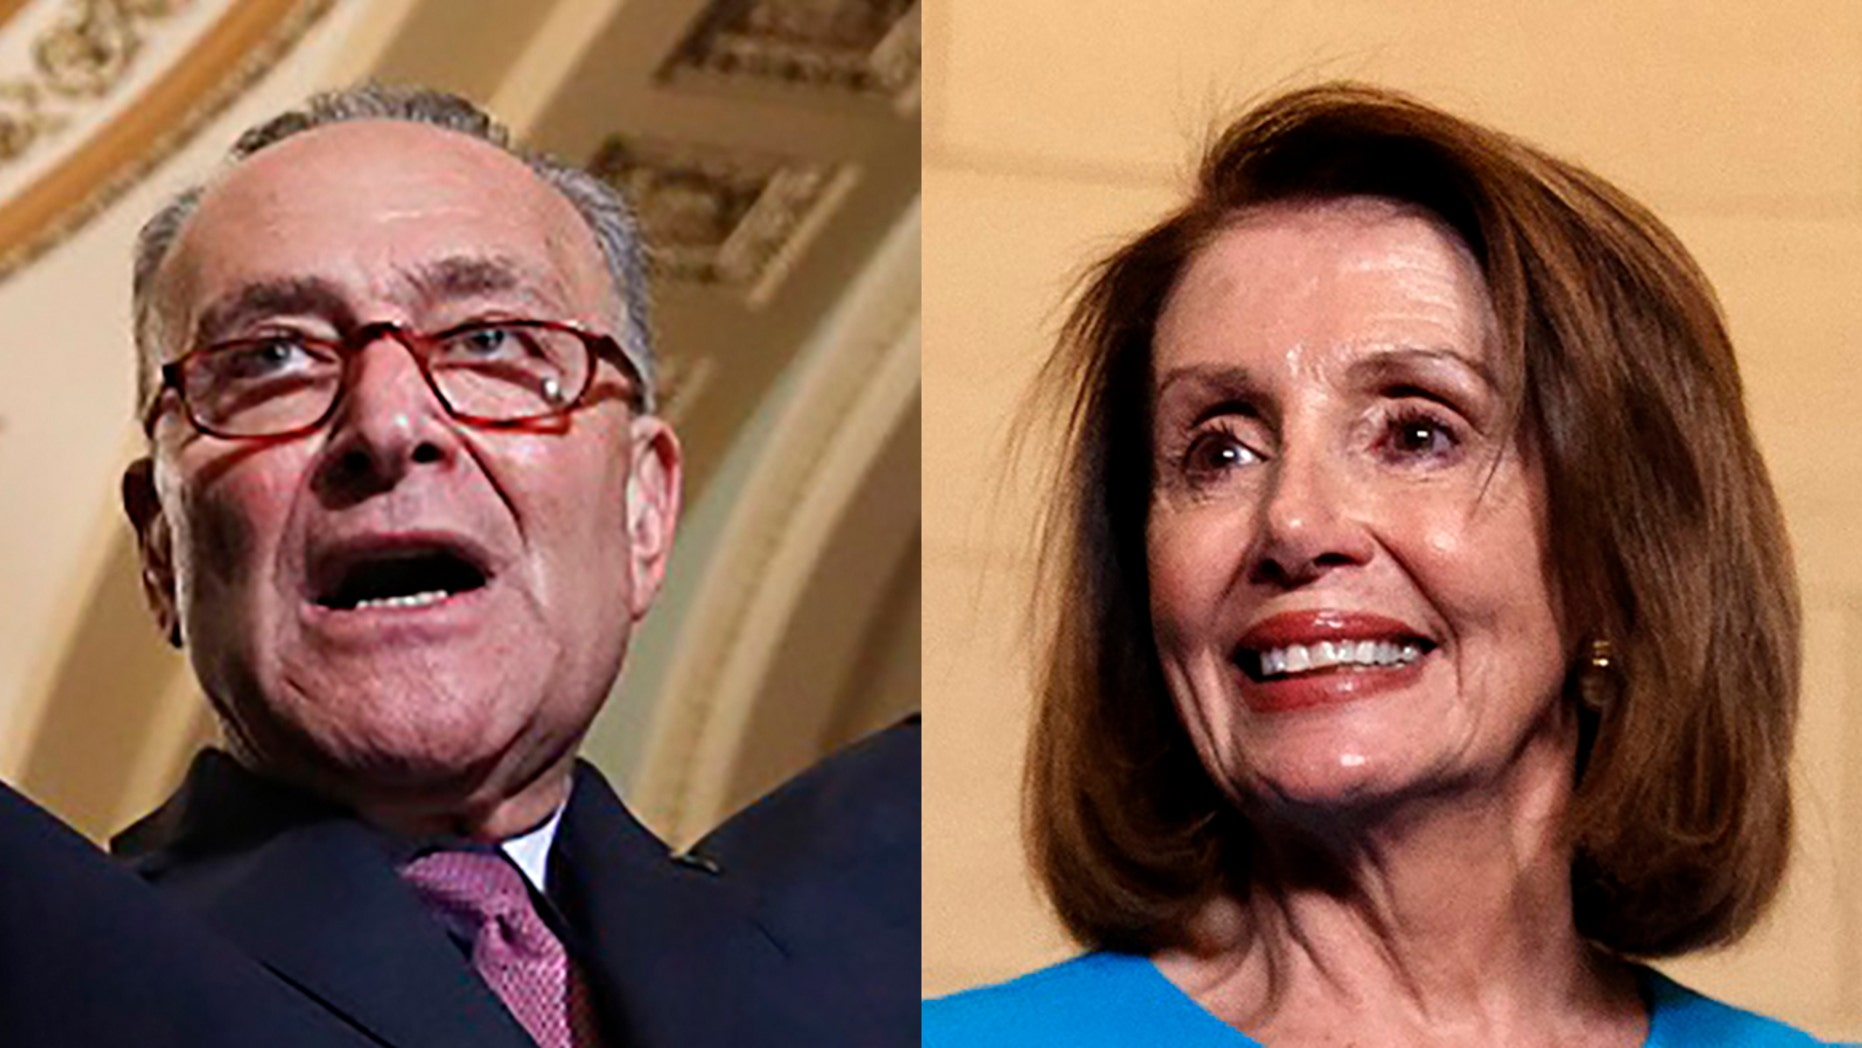 Sen. Chuck Schumer and U.S. Rep. Nancy Pelosi will meet with President Trump next week, Fox News has learned.